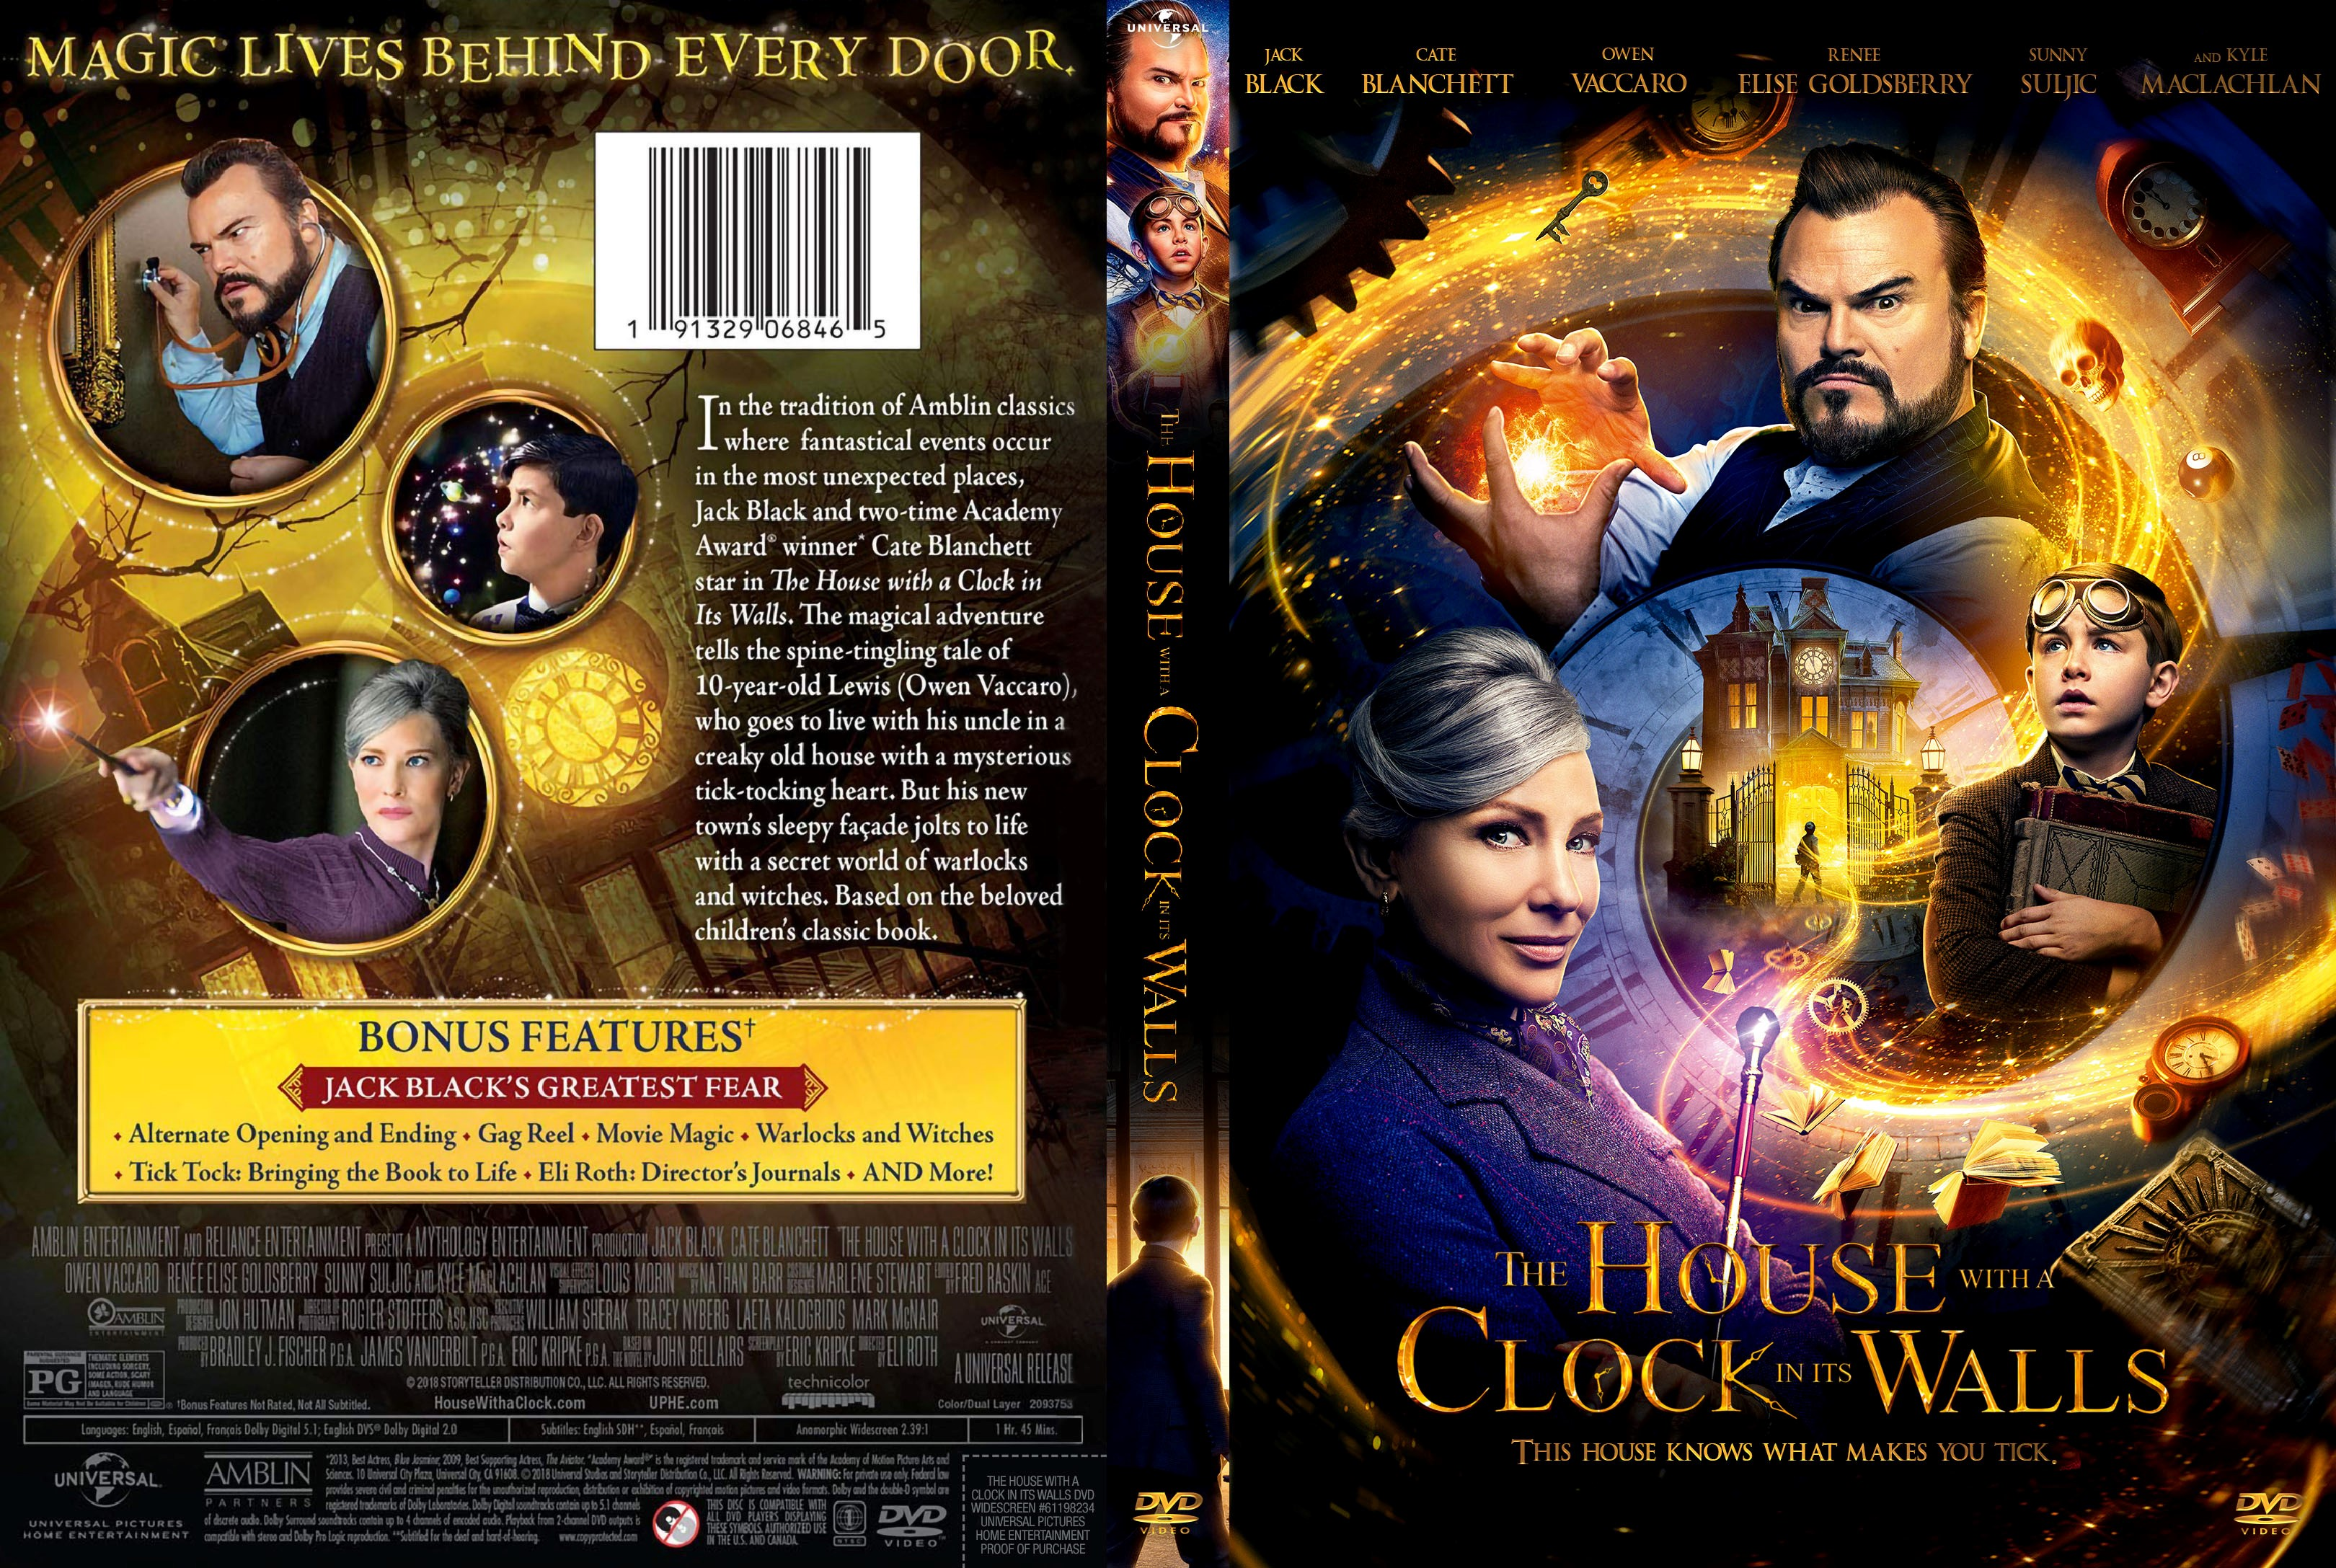 The House with a Clock in Its Walls DVD Cover